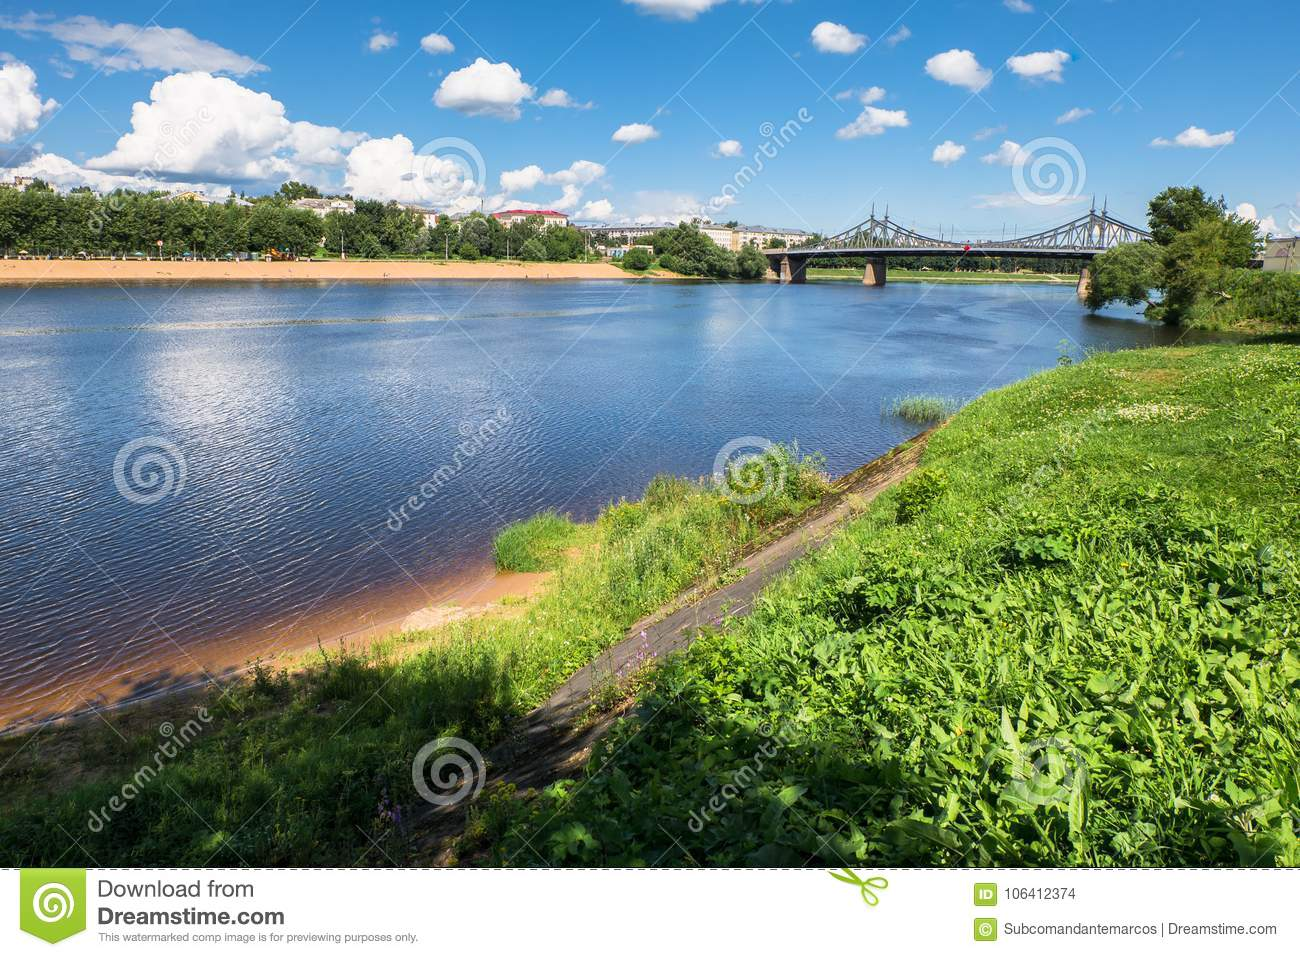 Summer view of the water surface and shores of the Volga river and the old Volga bridge in the background, city of Tver, Russia.